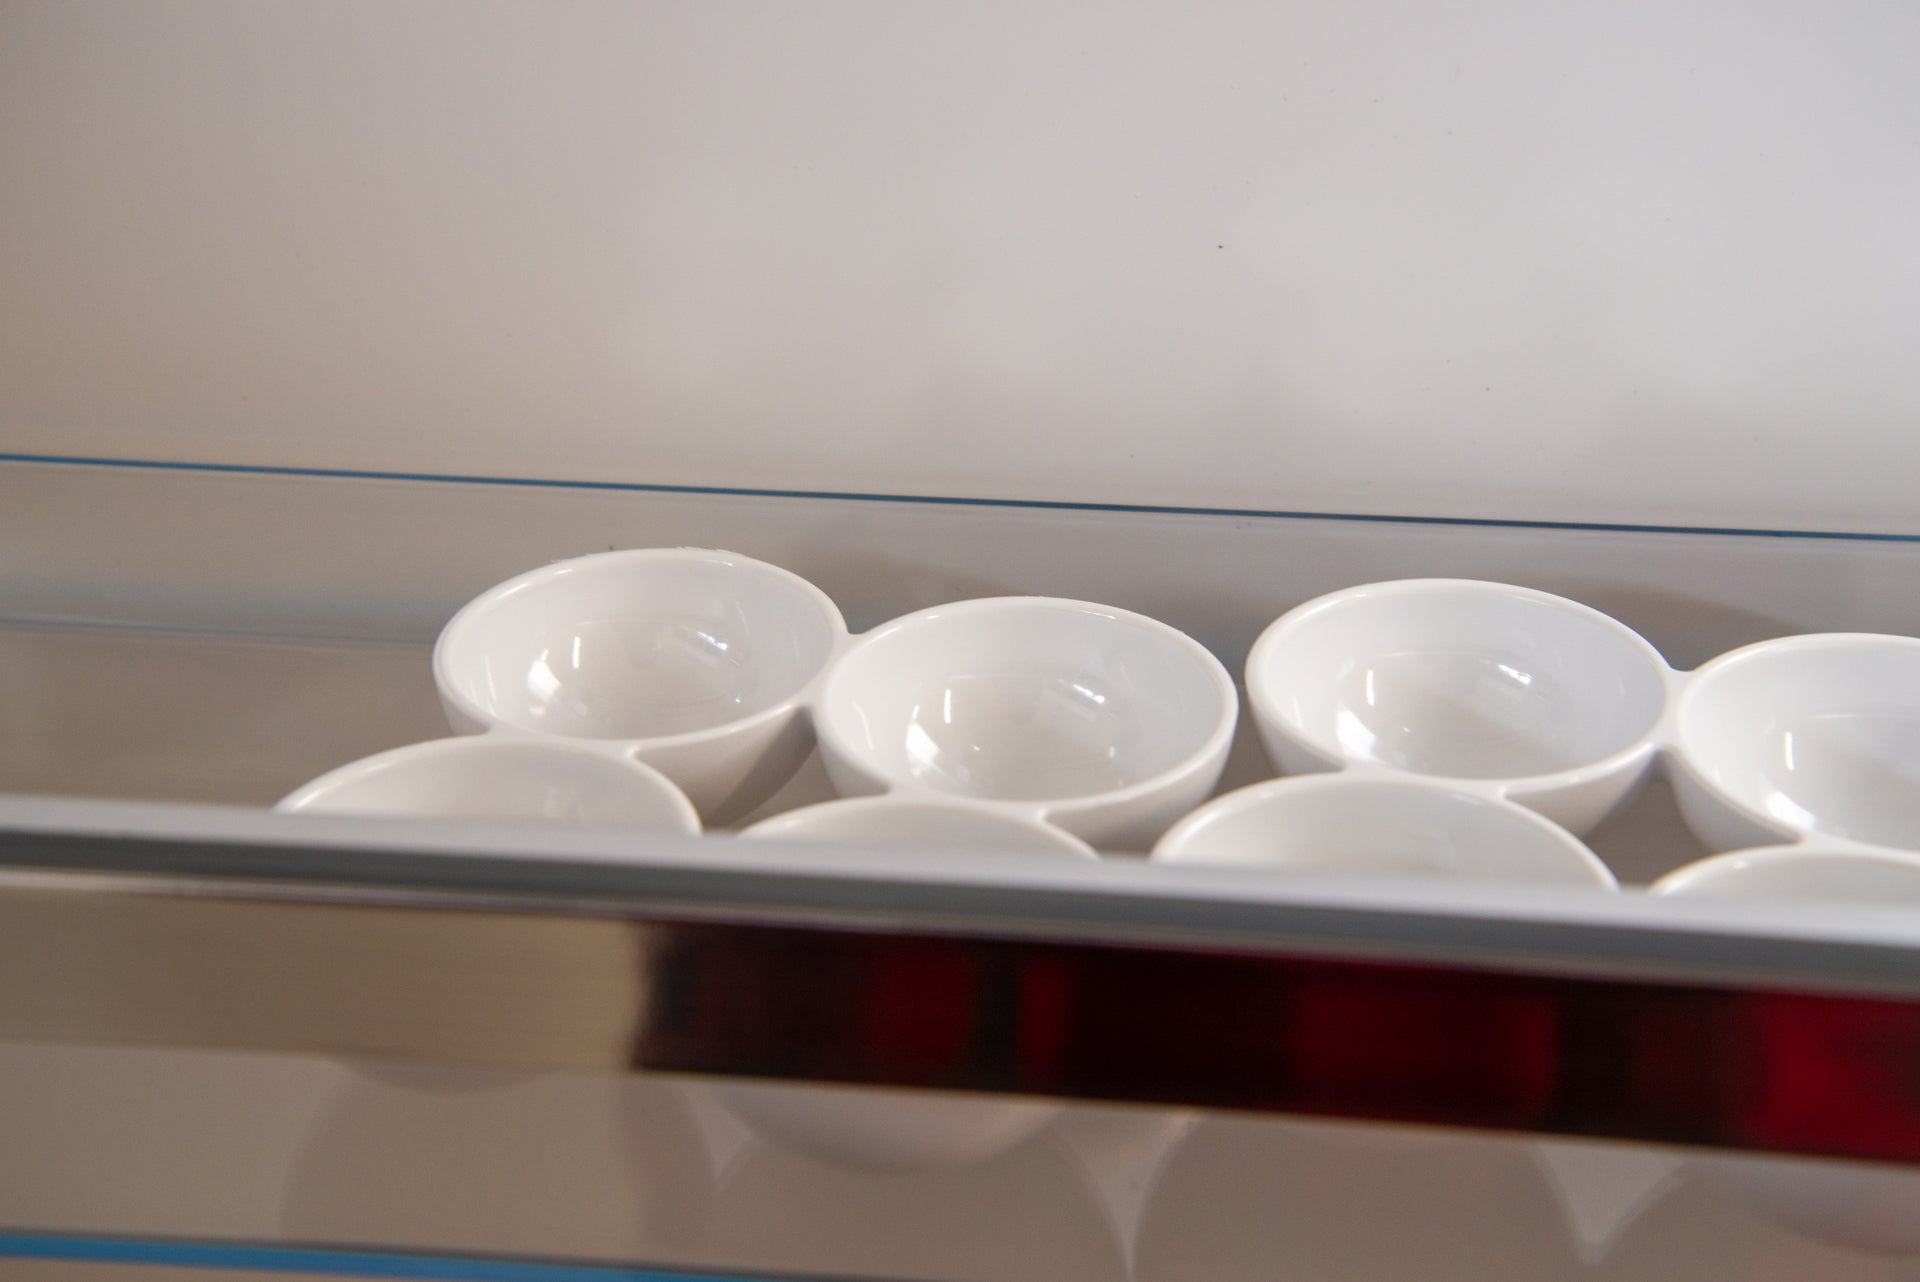 Bosch Serie 6 KGE49AICAG egg cups